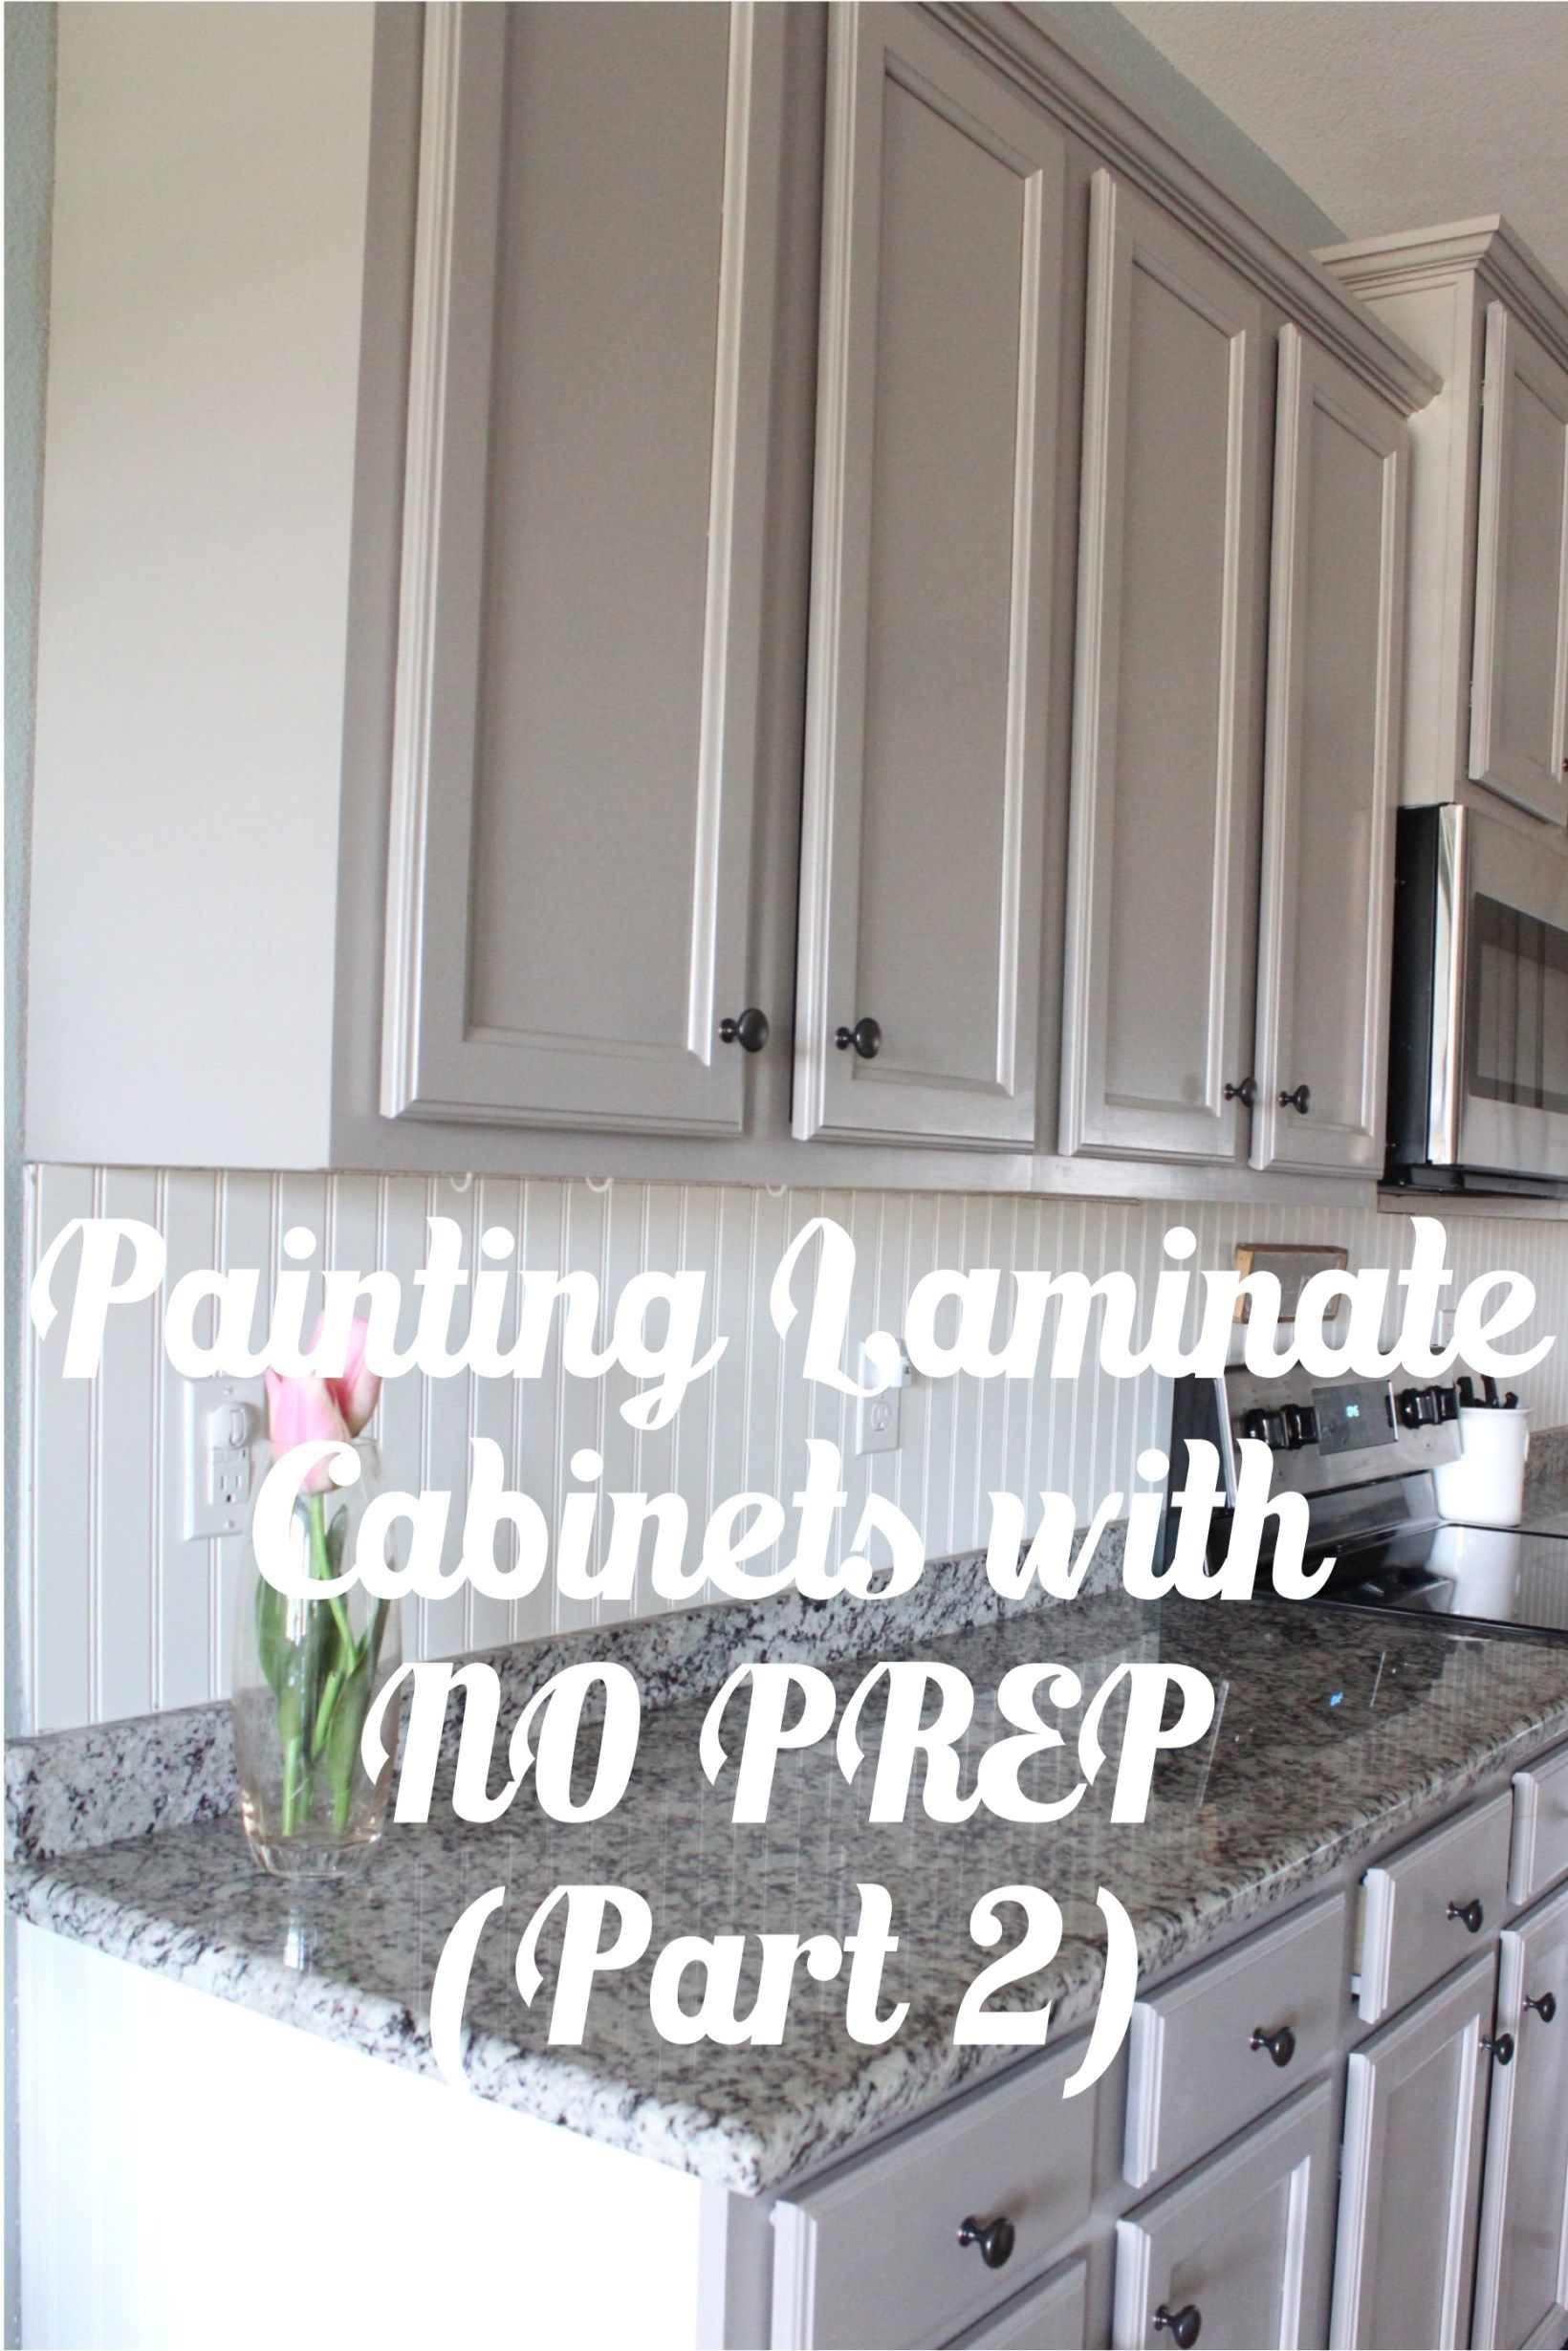 Painting Kitchen Cabinets Without Primer Laminate Cabinets Painting Laminate Kitchen Cabinets Painting Laminate Cabinets